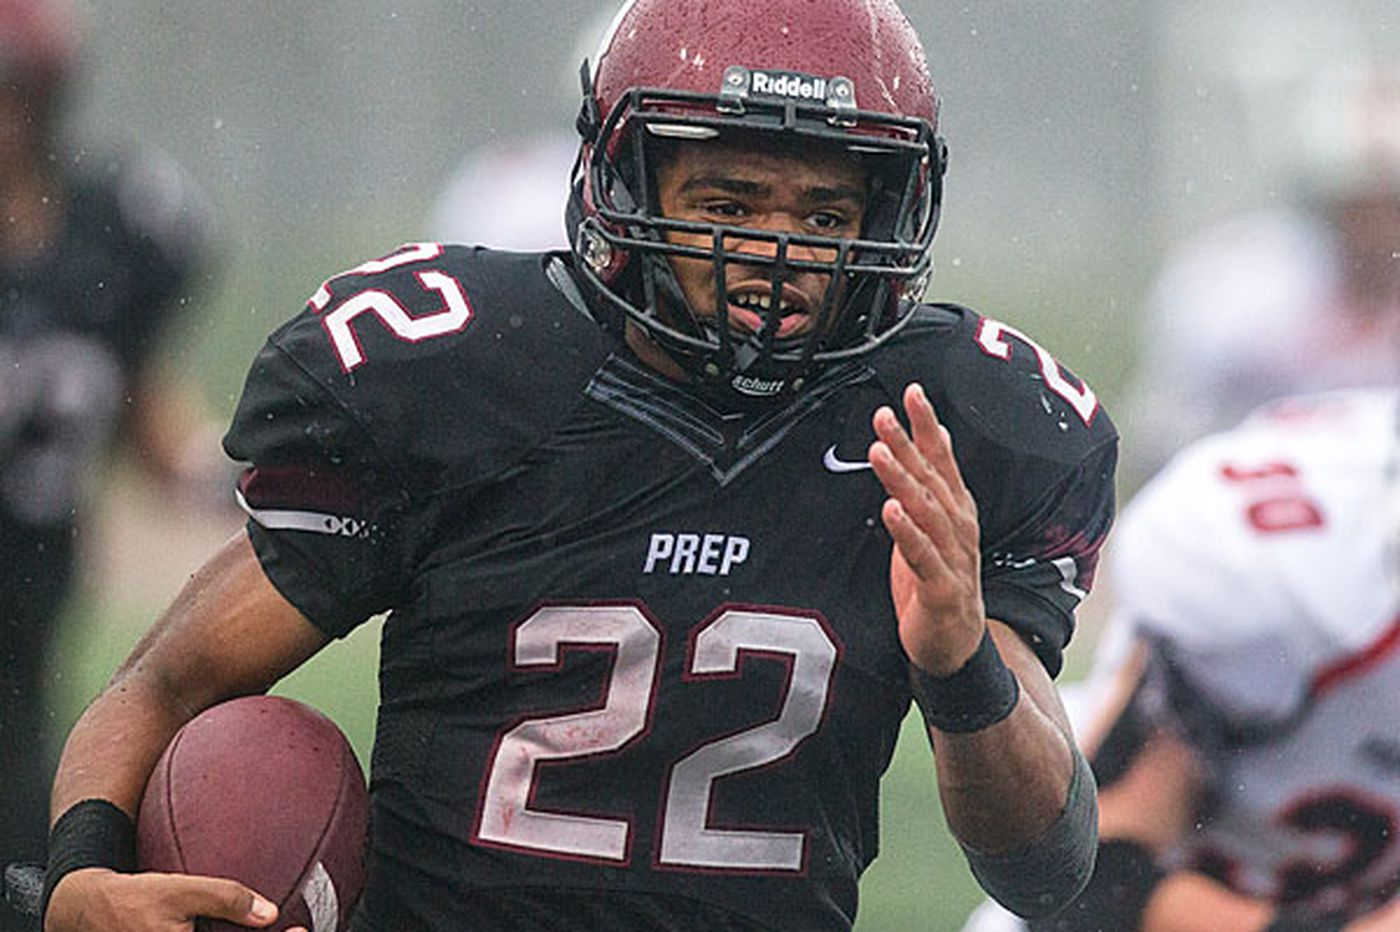 Prep returns to state final